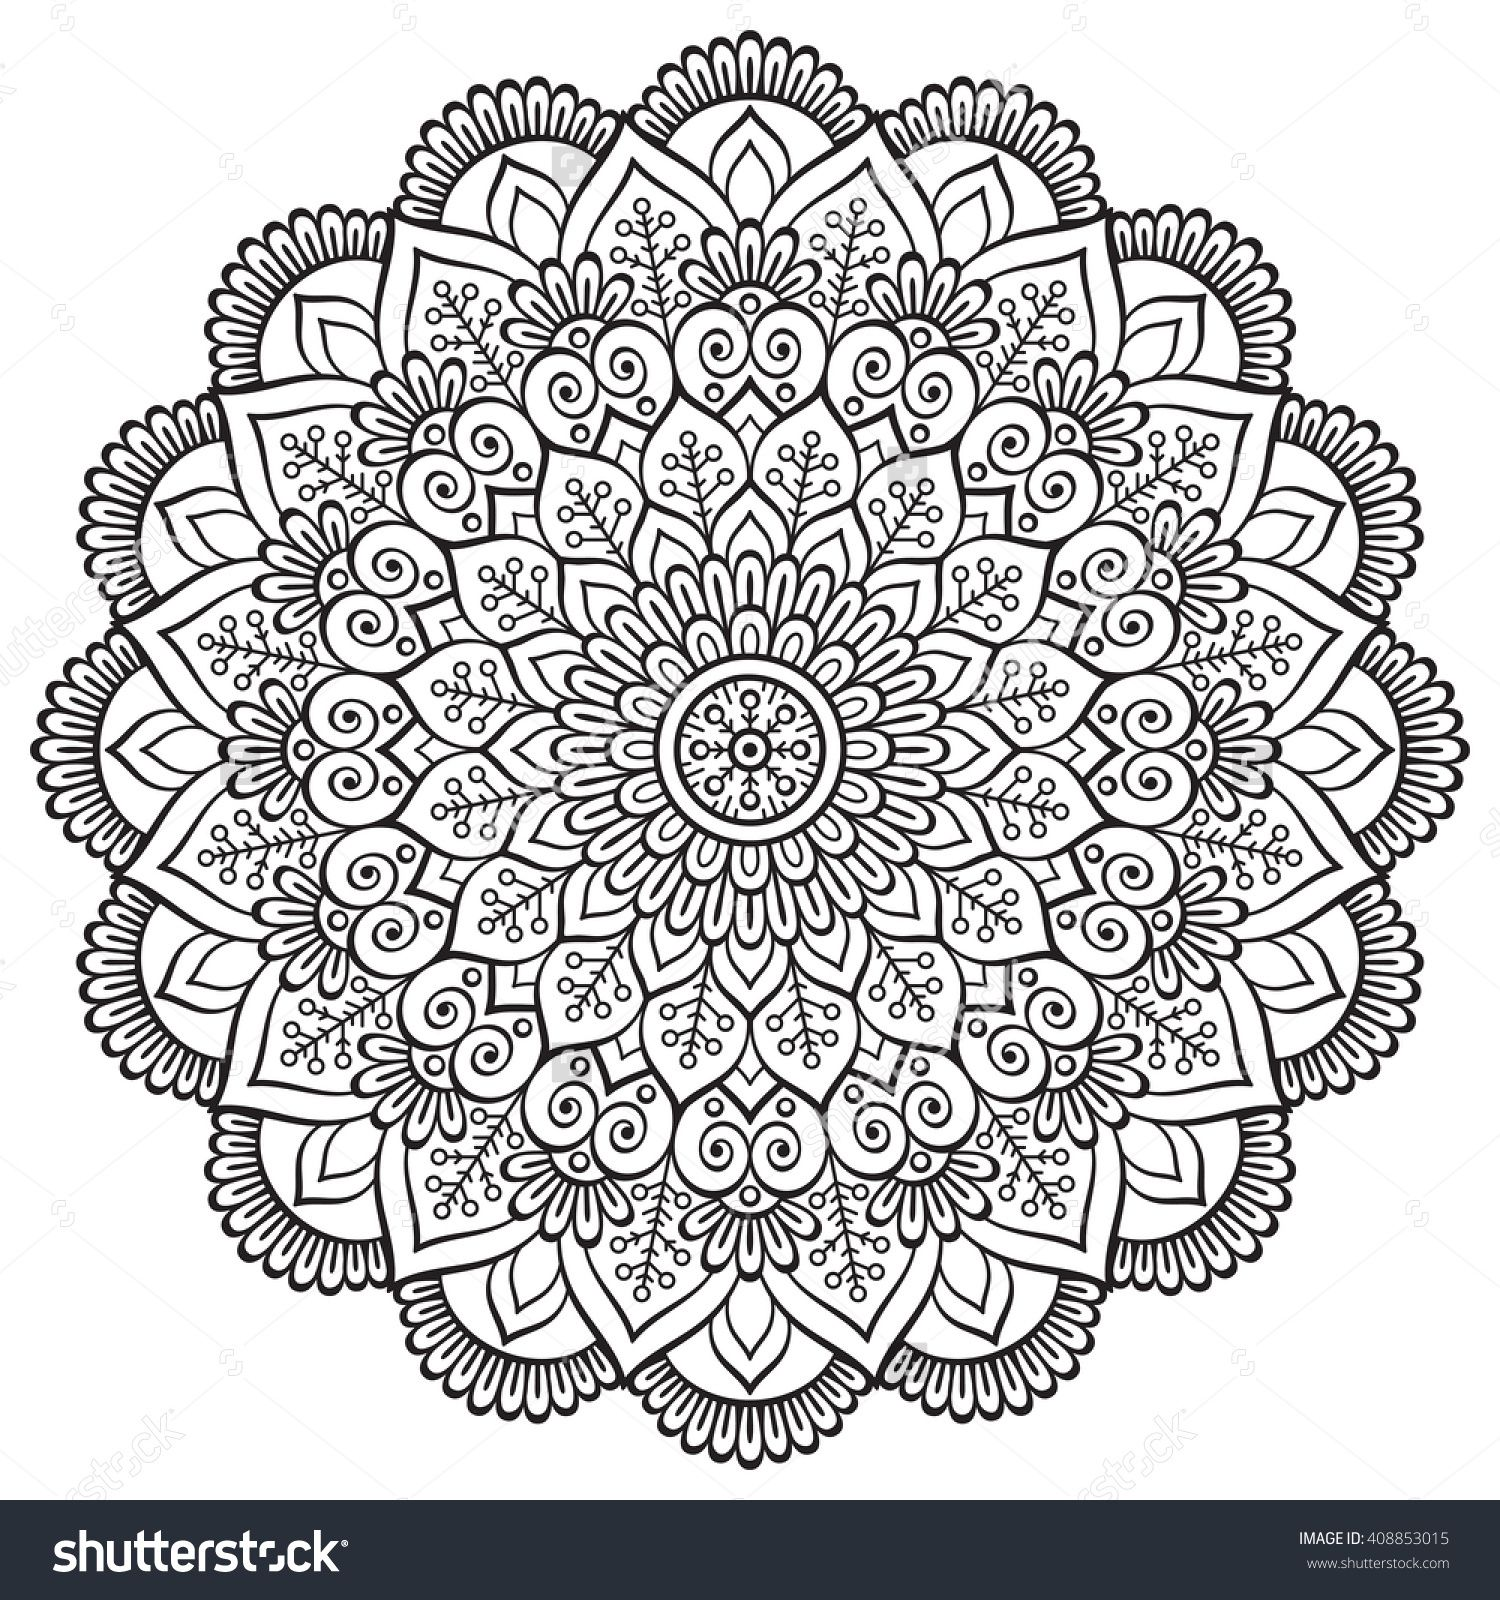 Discover millions of royalty free photos illustrations and vectors in the Shutterstock collection Fleurs VecteurColoriage Mandala